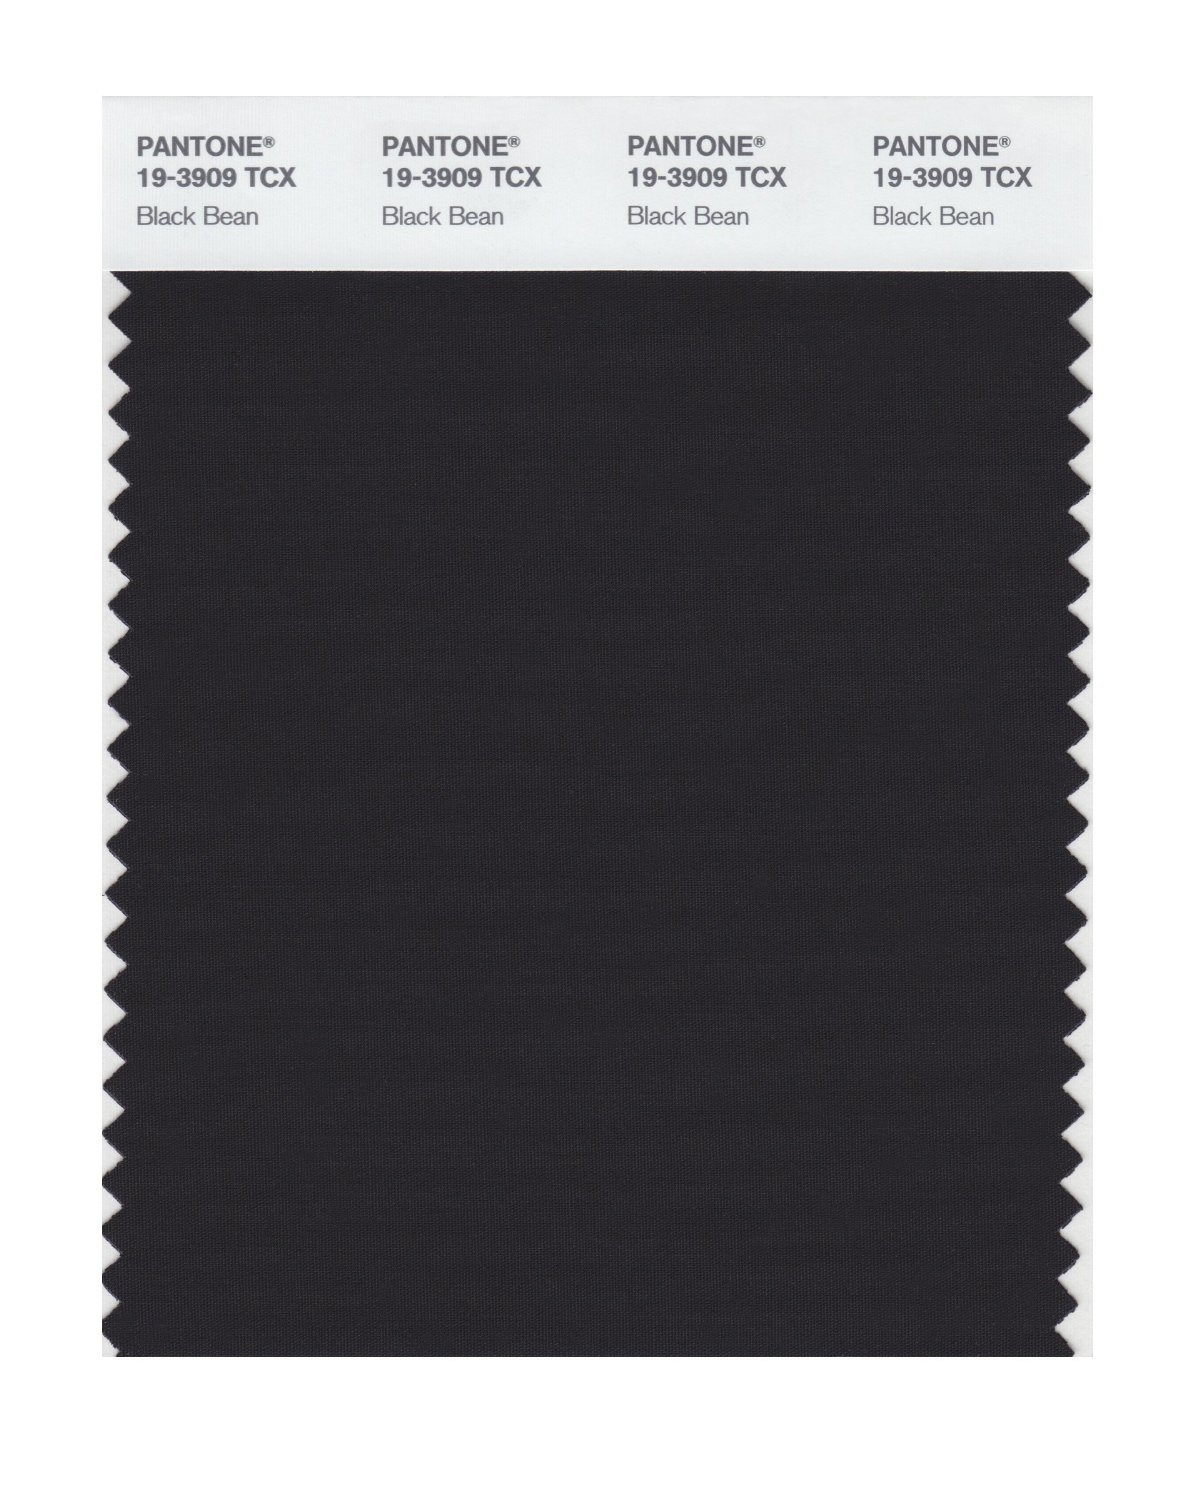 Pantone Smart Swatch 19-3909 Black Bean